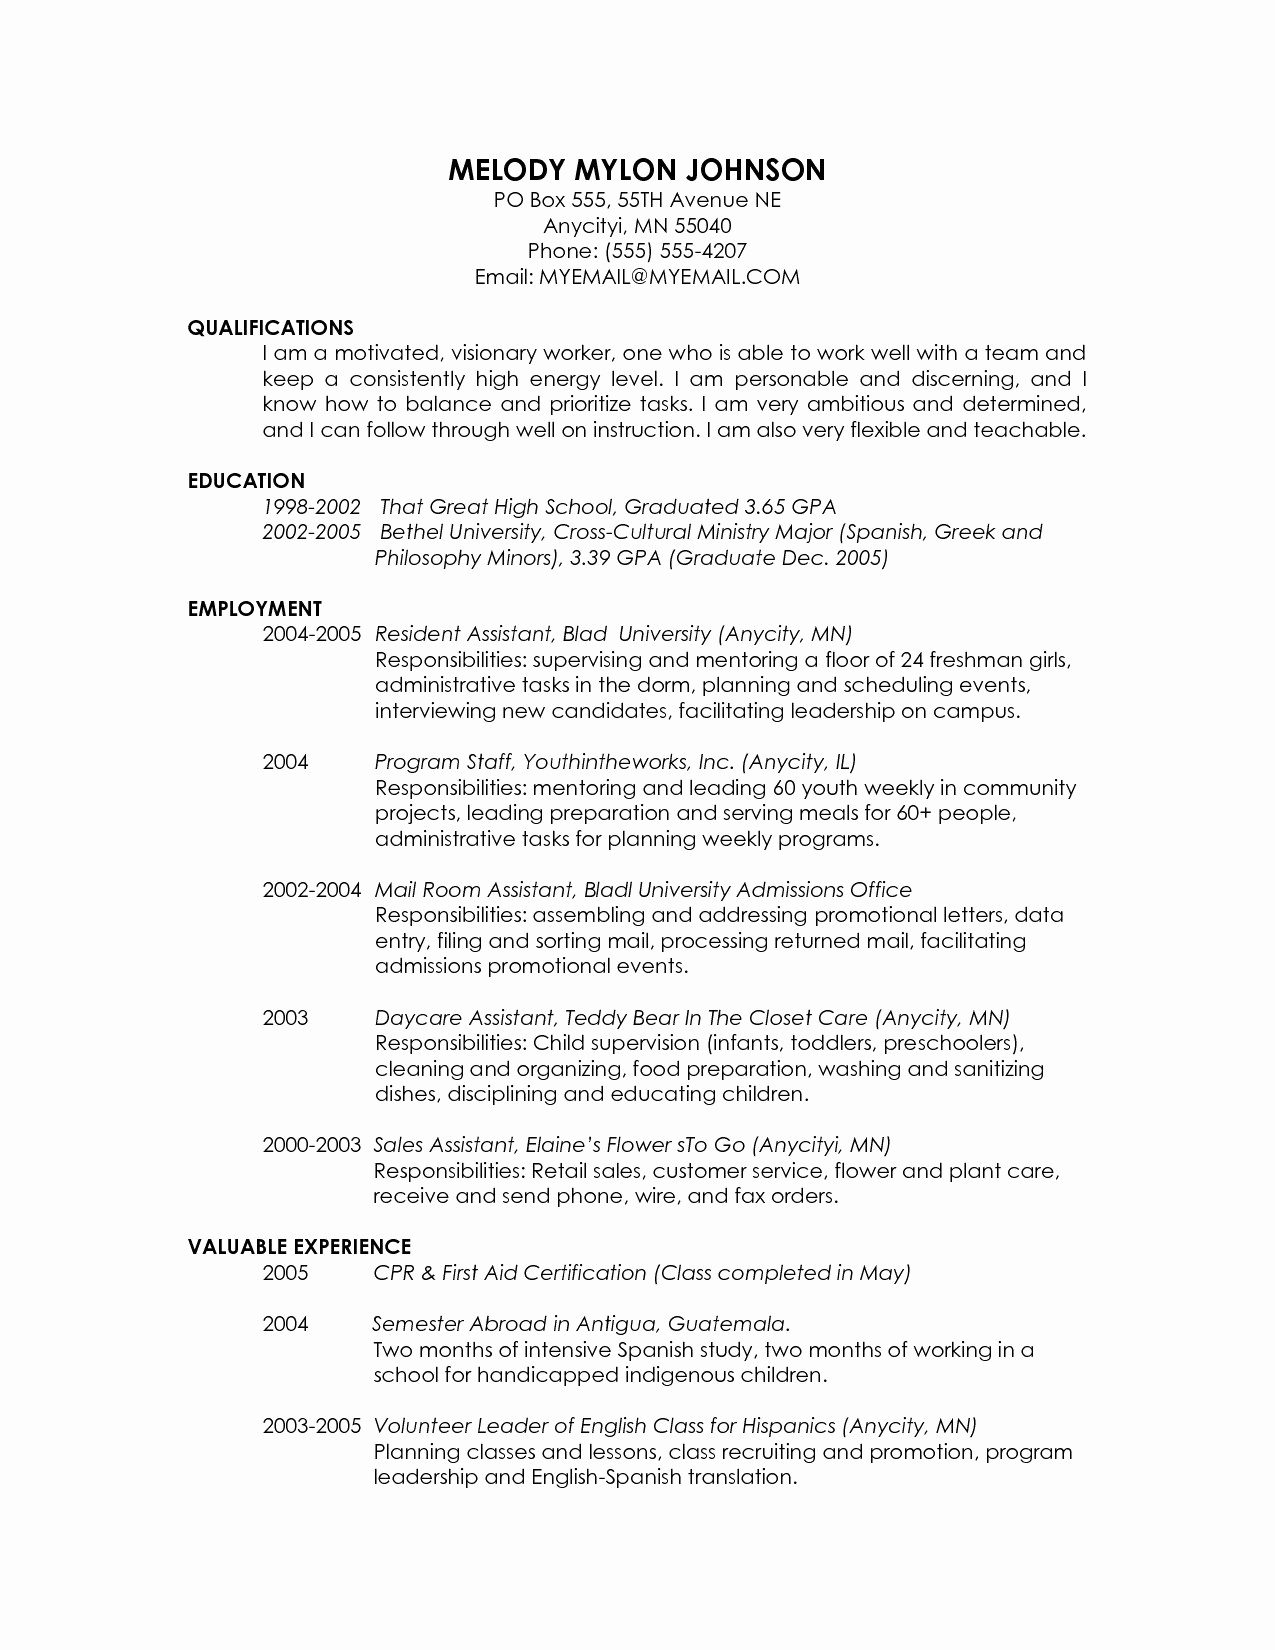 Sending Resume to Recruiter Email - Sending Resume to Recruiter Email Awesome Gpa Resume Unique Fresh